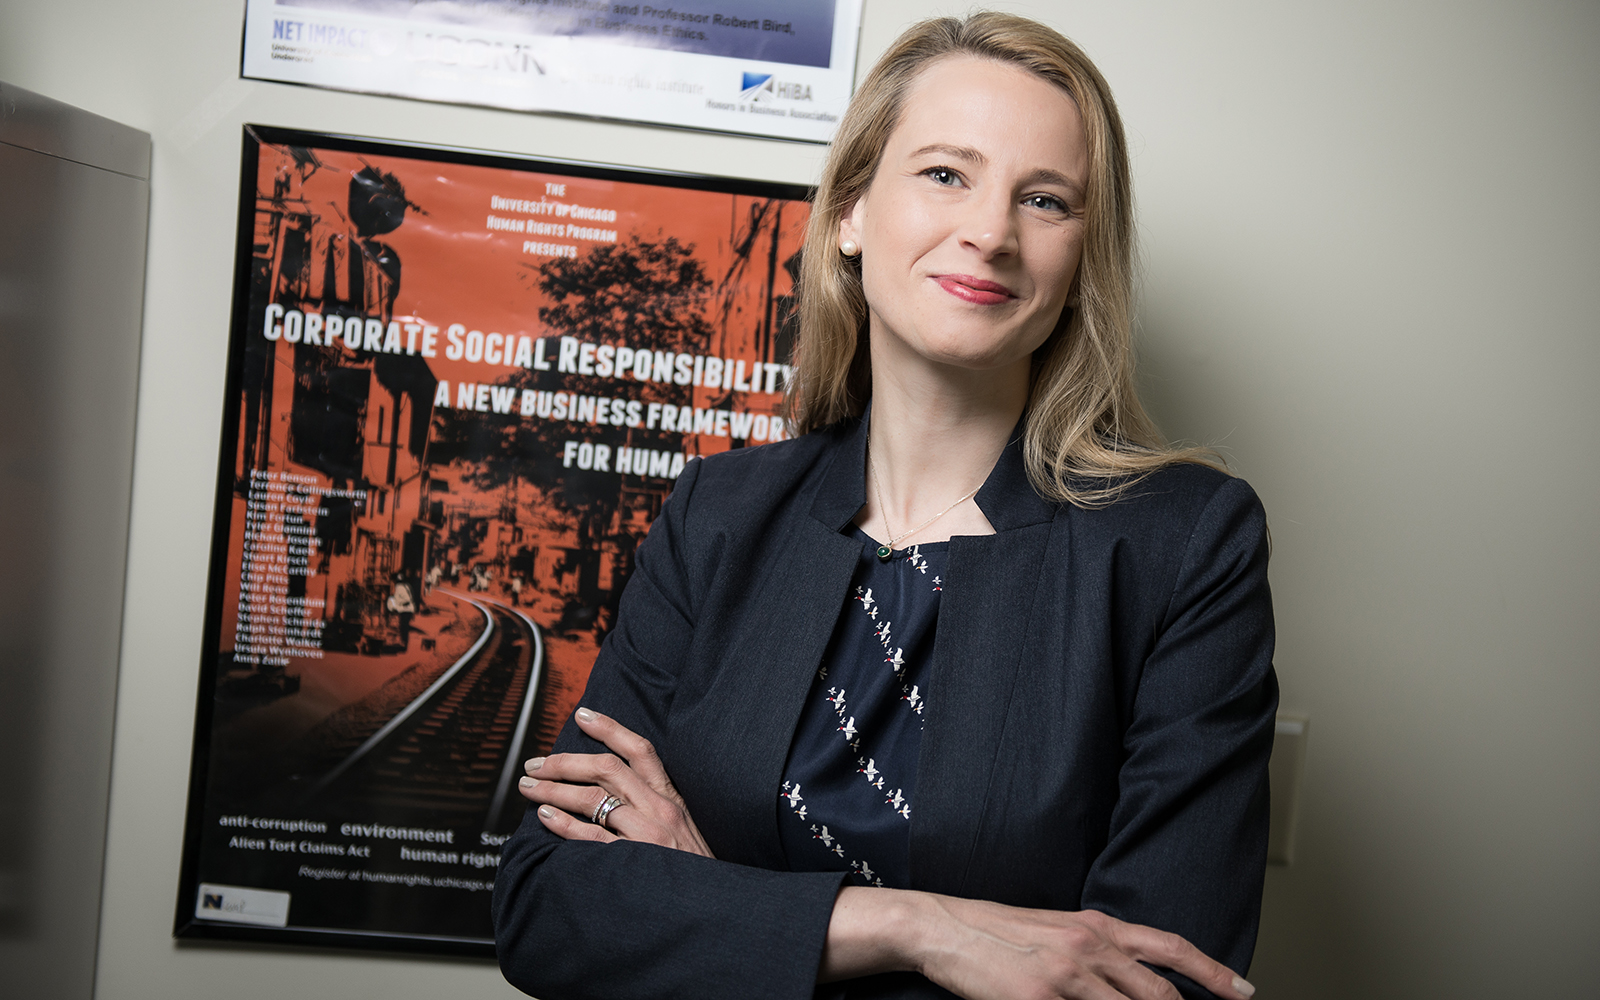 Caroline Kaeb is an Assistant Professor of Business Law and Human Rights at the UConn School of Business, where she holds a joint appointment with the Human Rights Institute and a courtesy appointment with the School of Law. (Nathan Oldham/UConn School of Business)